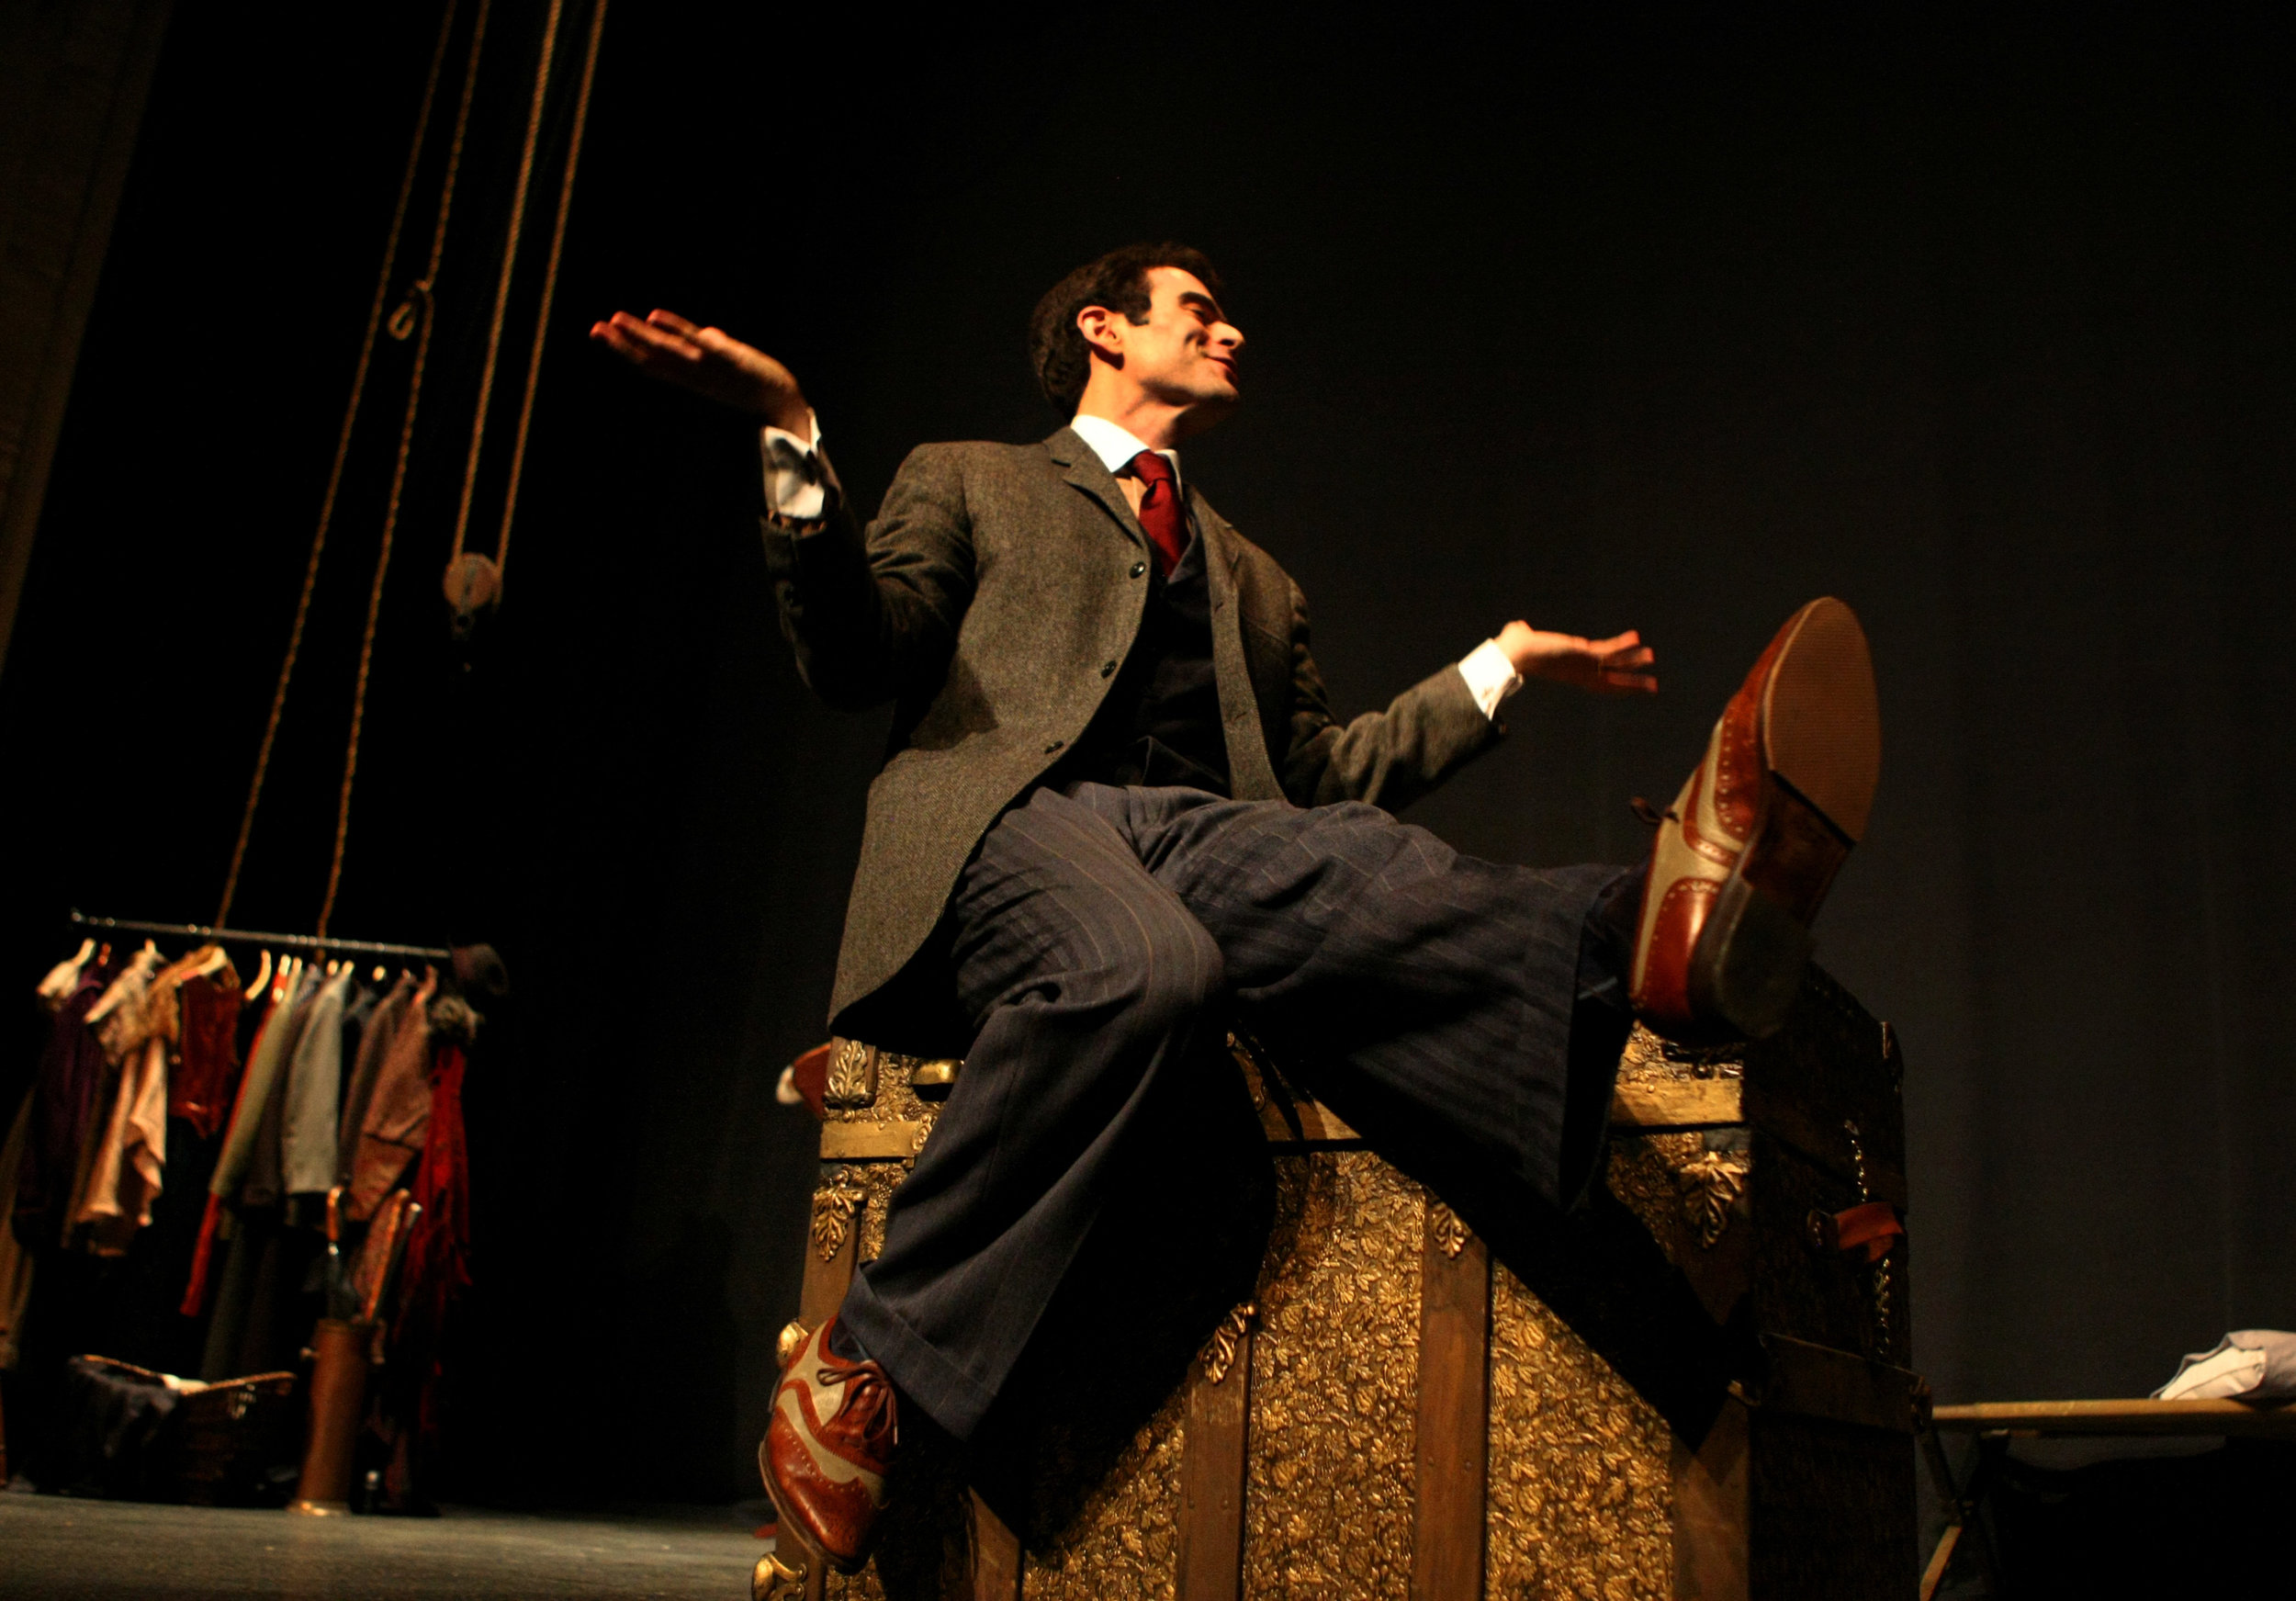 Sid Solomon, an actor in the Virginia Stage Company's upcoming play 'The Woman In Black', performs during a dress rehearsal at the Wells Theatre in Norfolk.